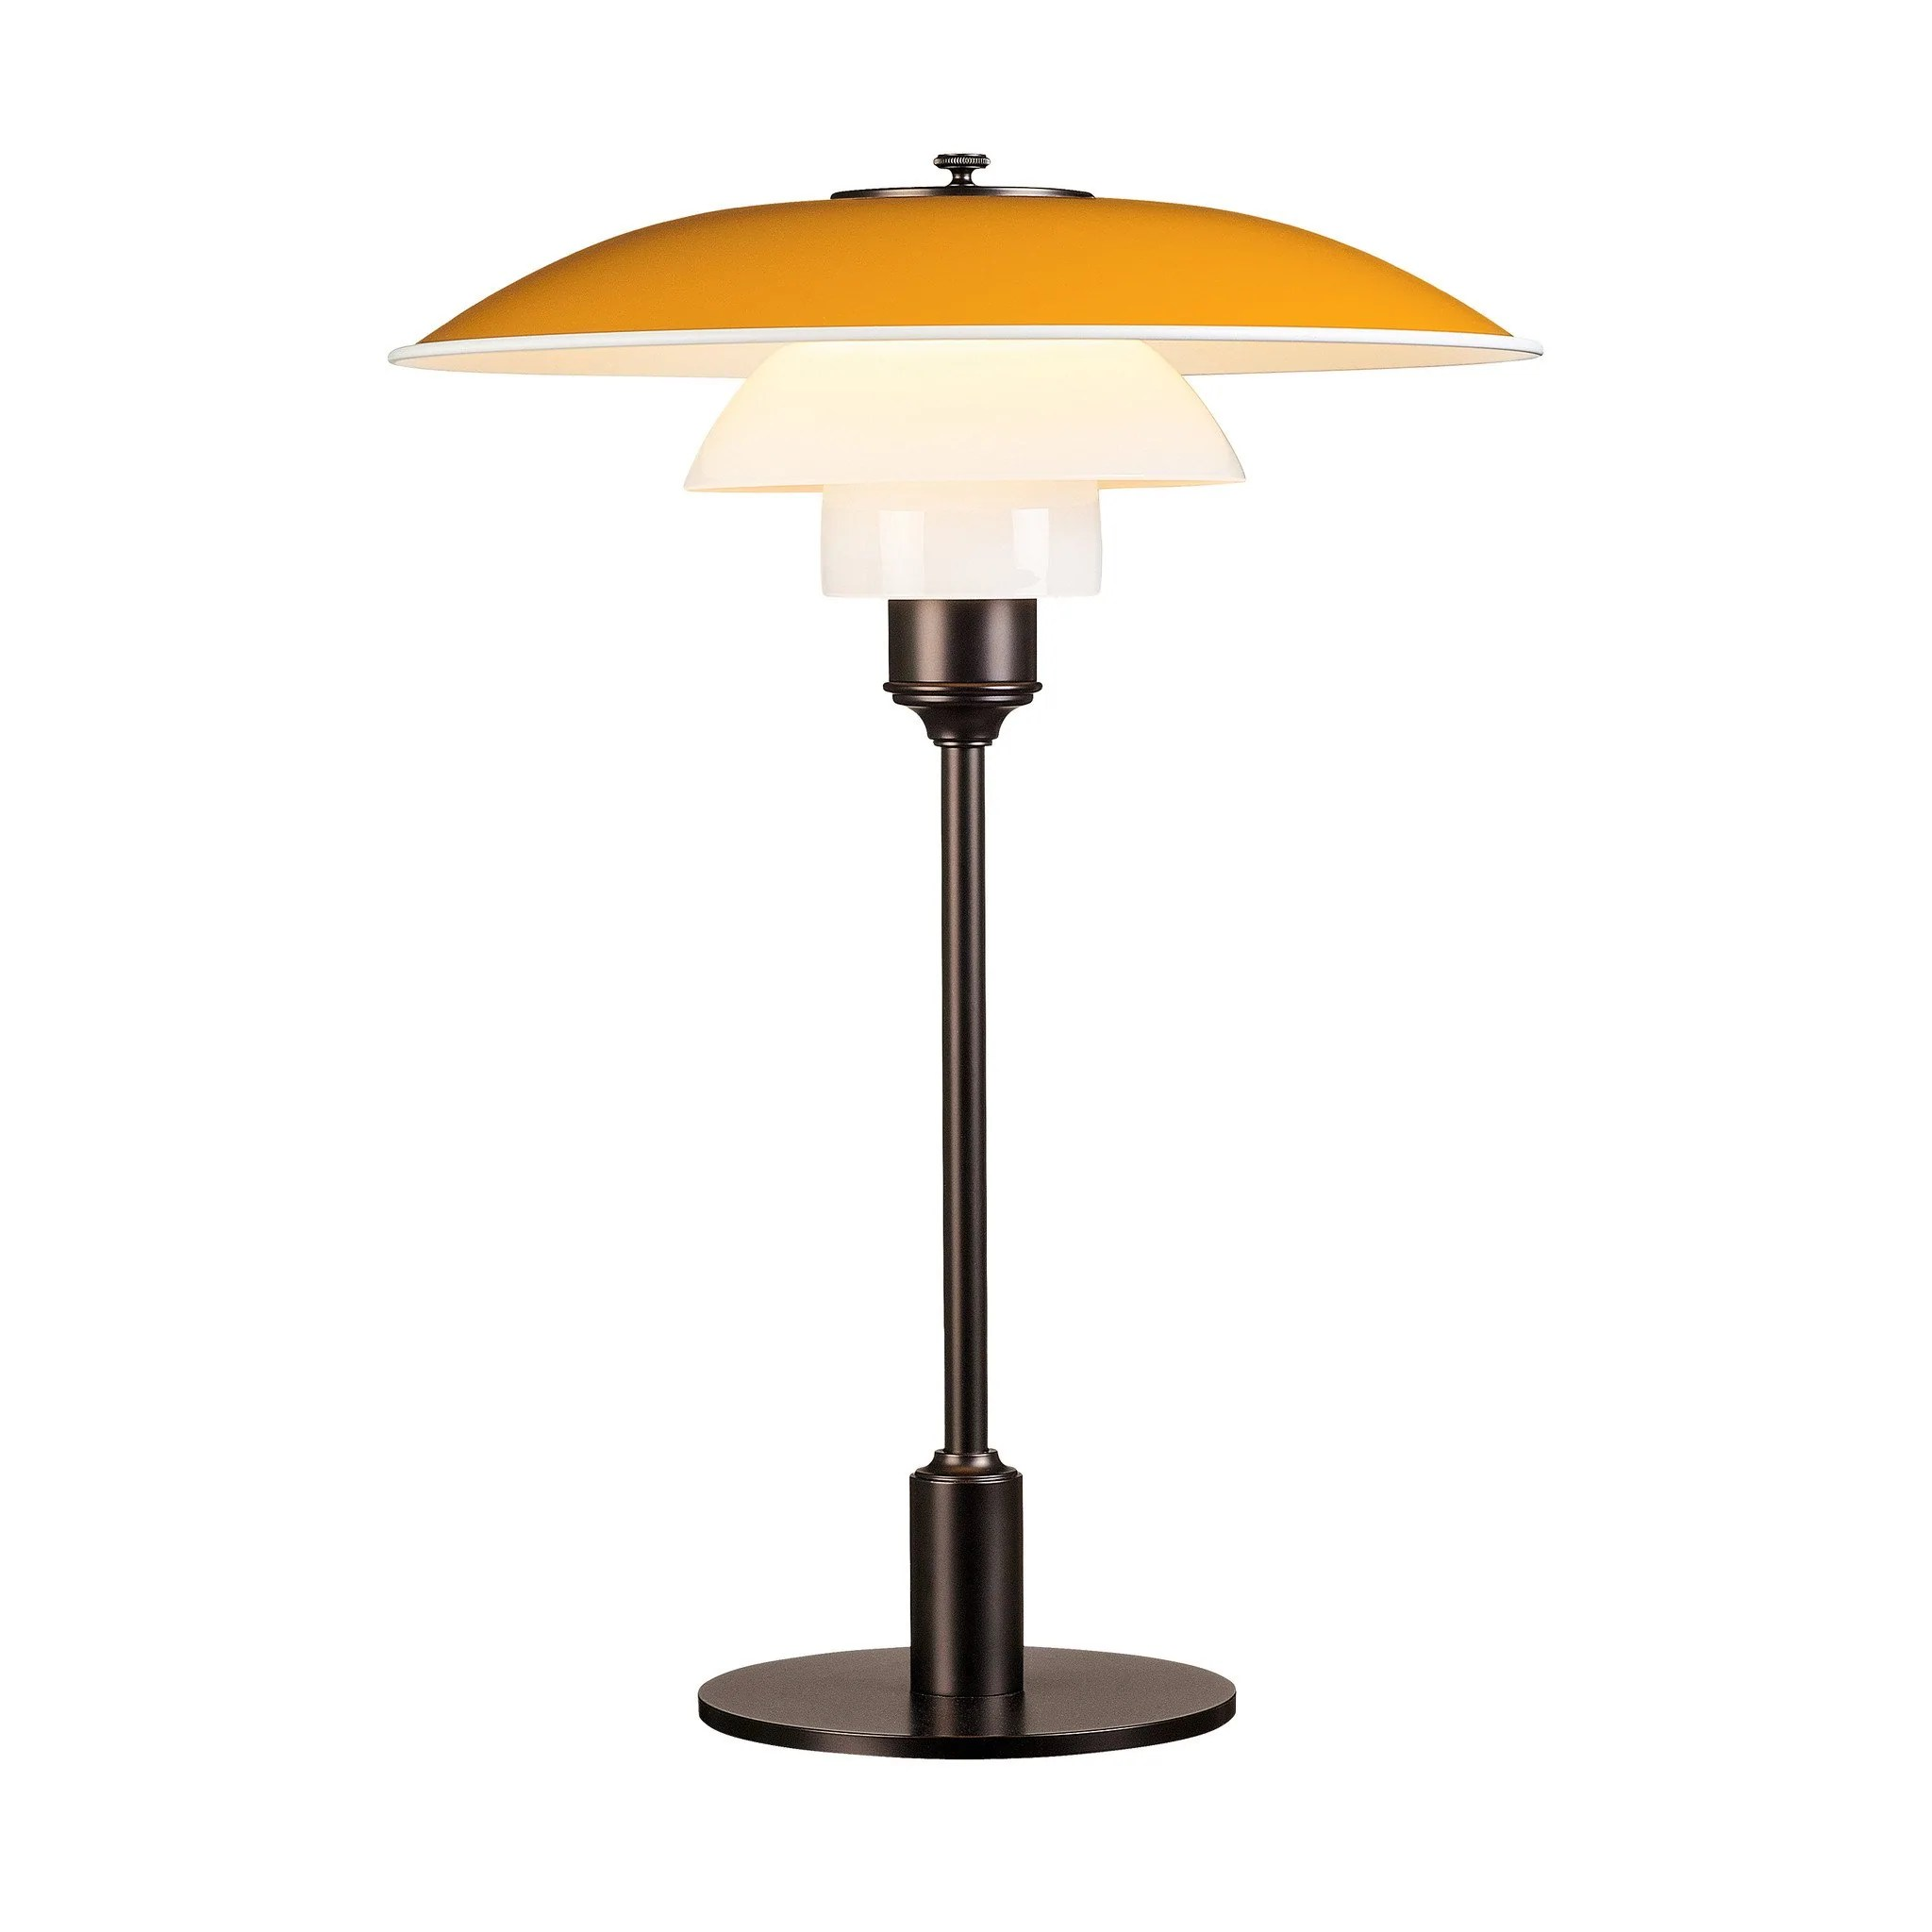 Louis Poulsen Ph 3 2 Ph 3 2 Table Lamp